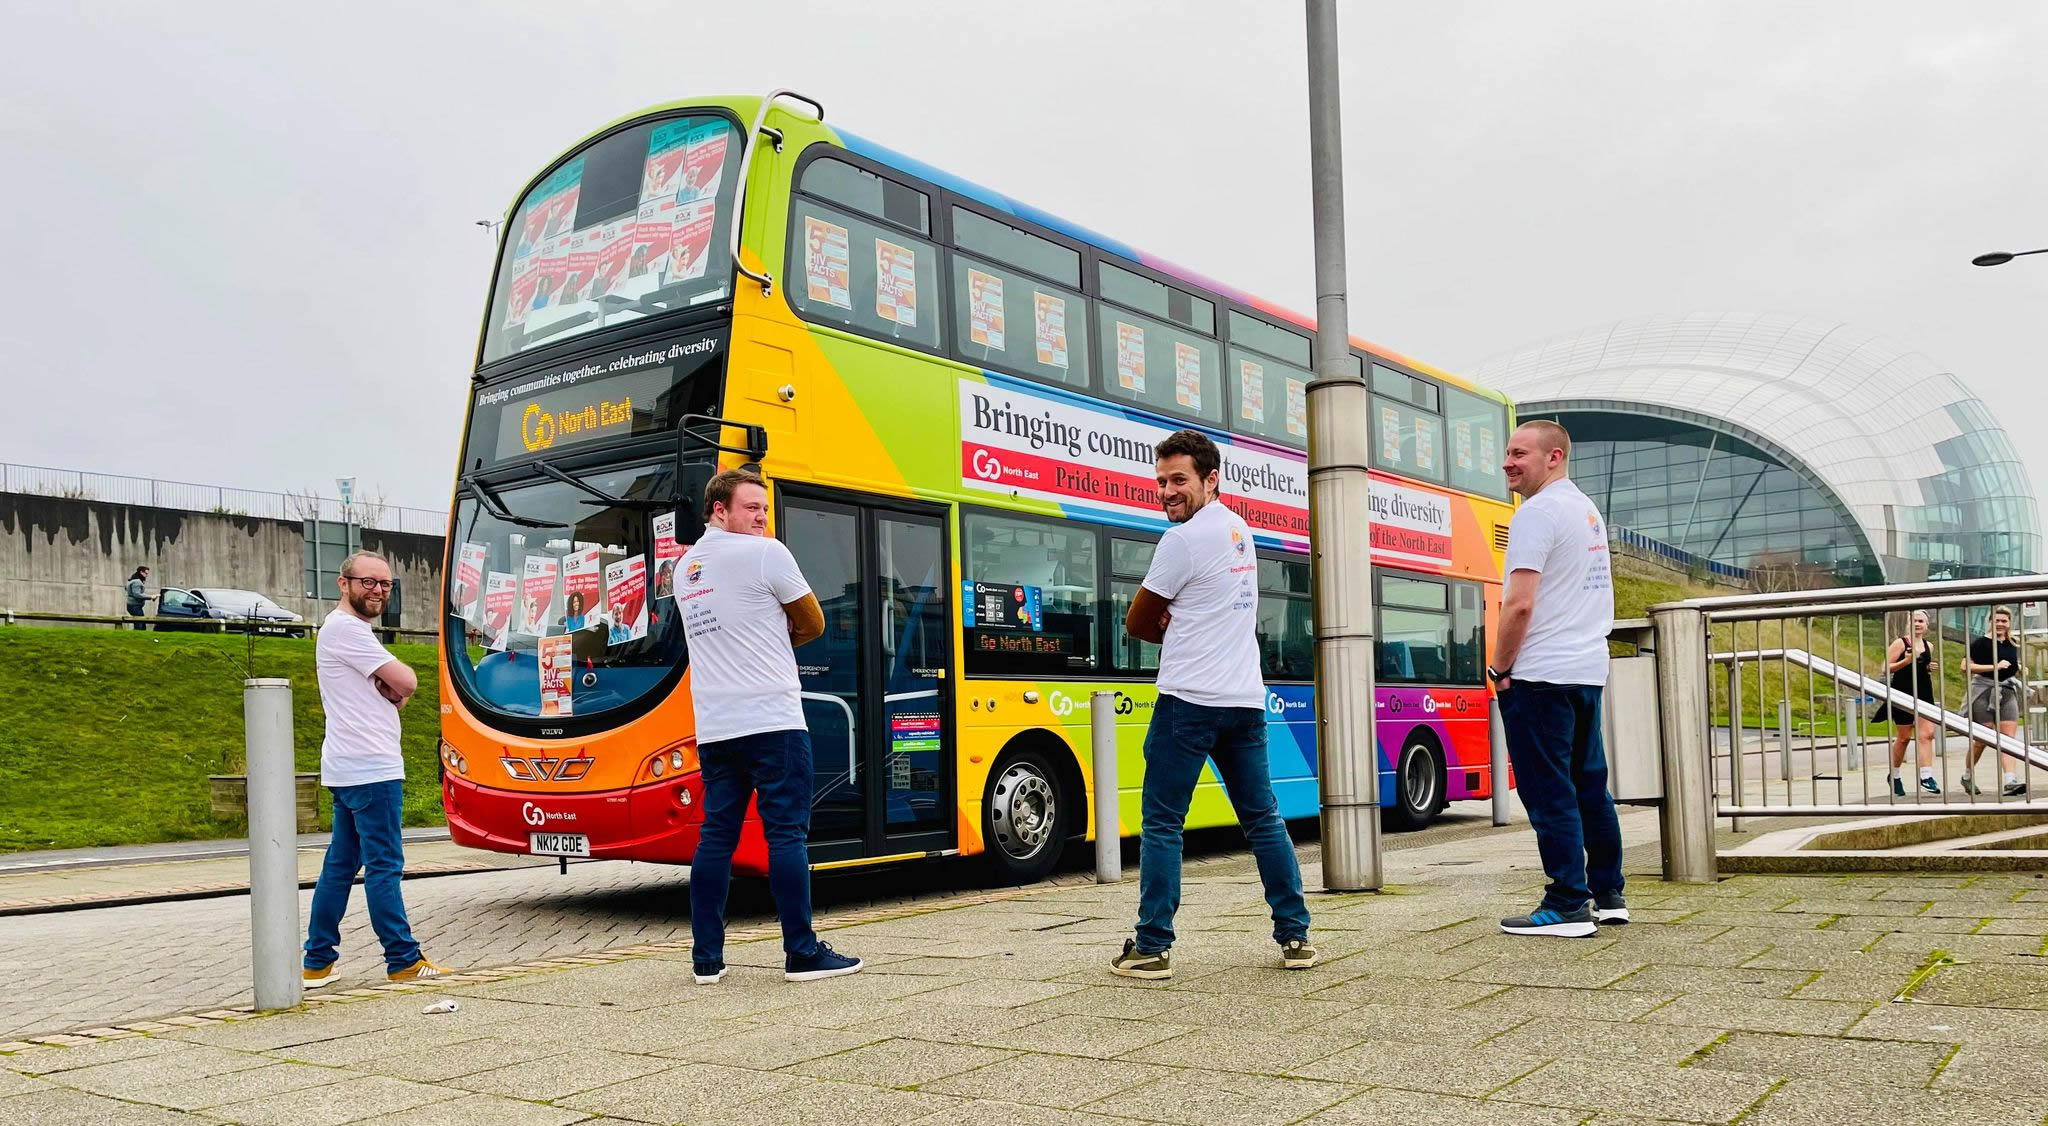 GNE Pride in Transport Bus World AIDS day